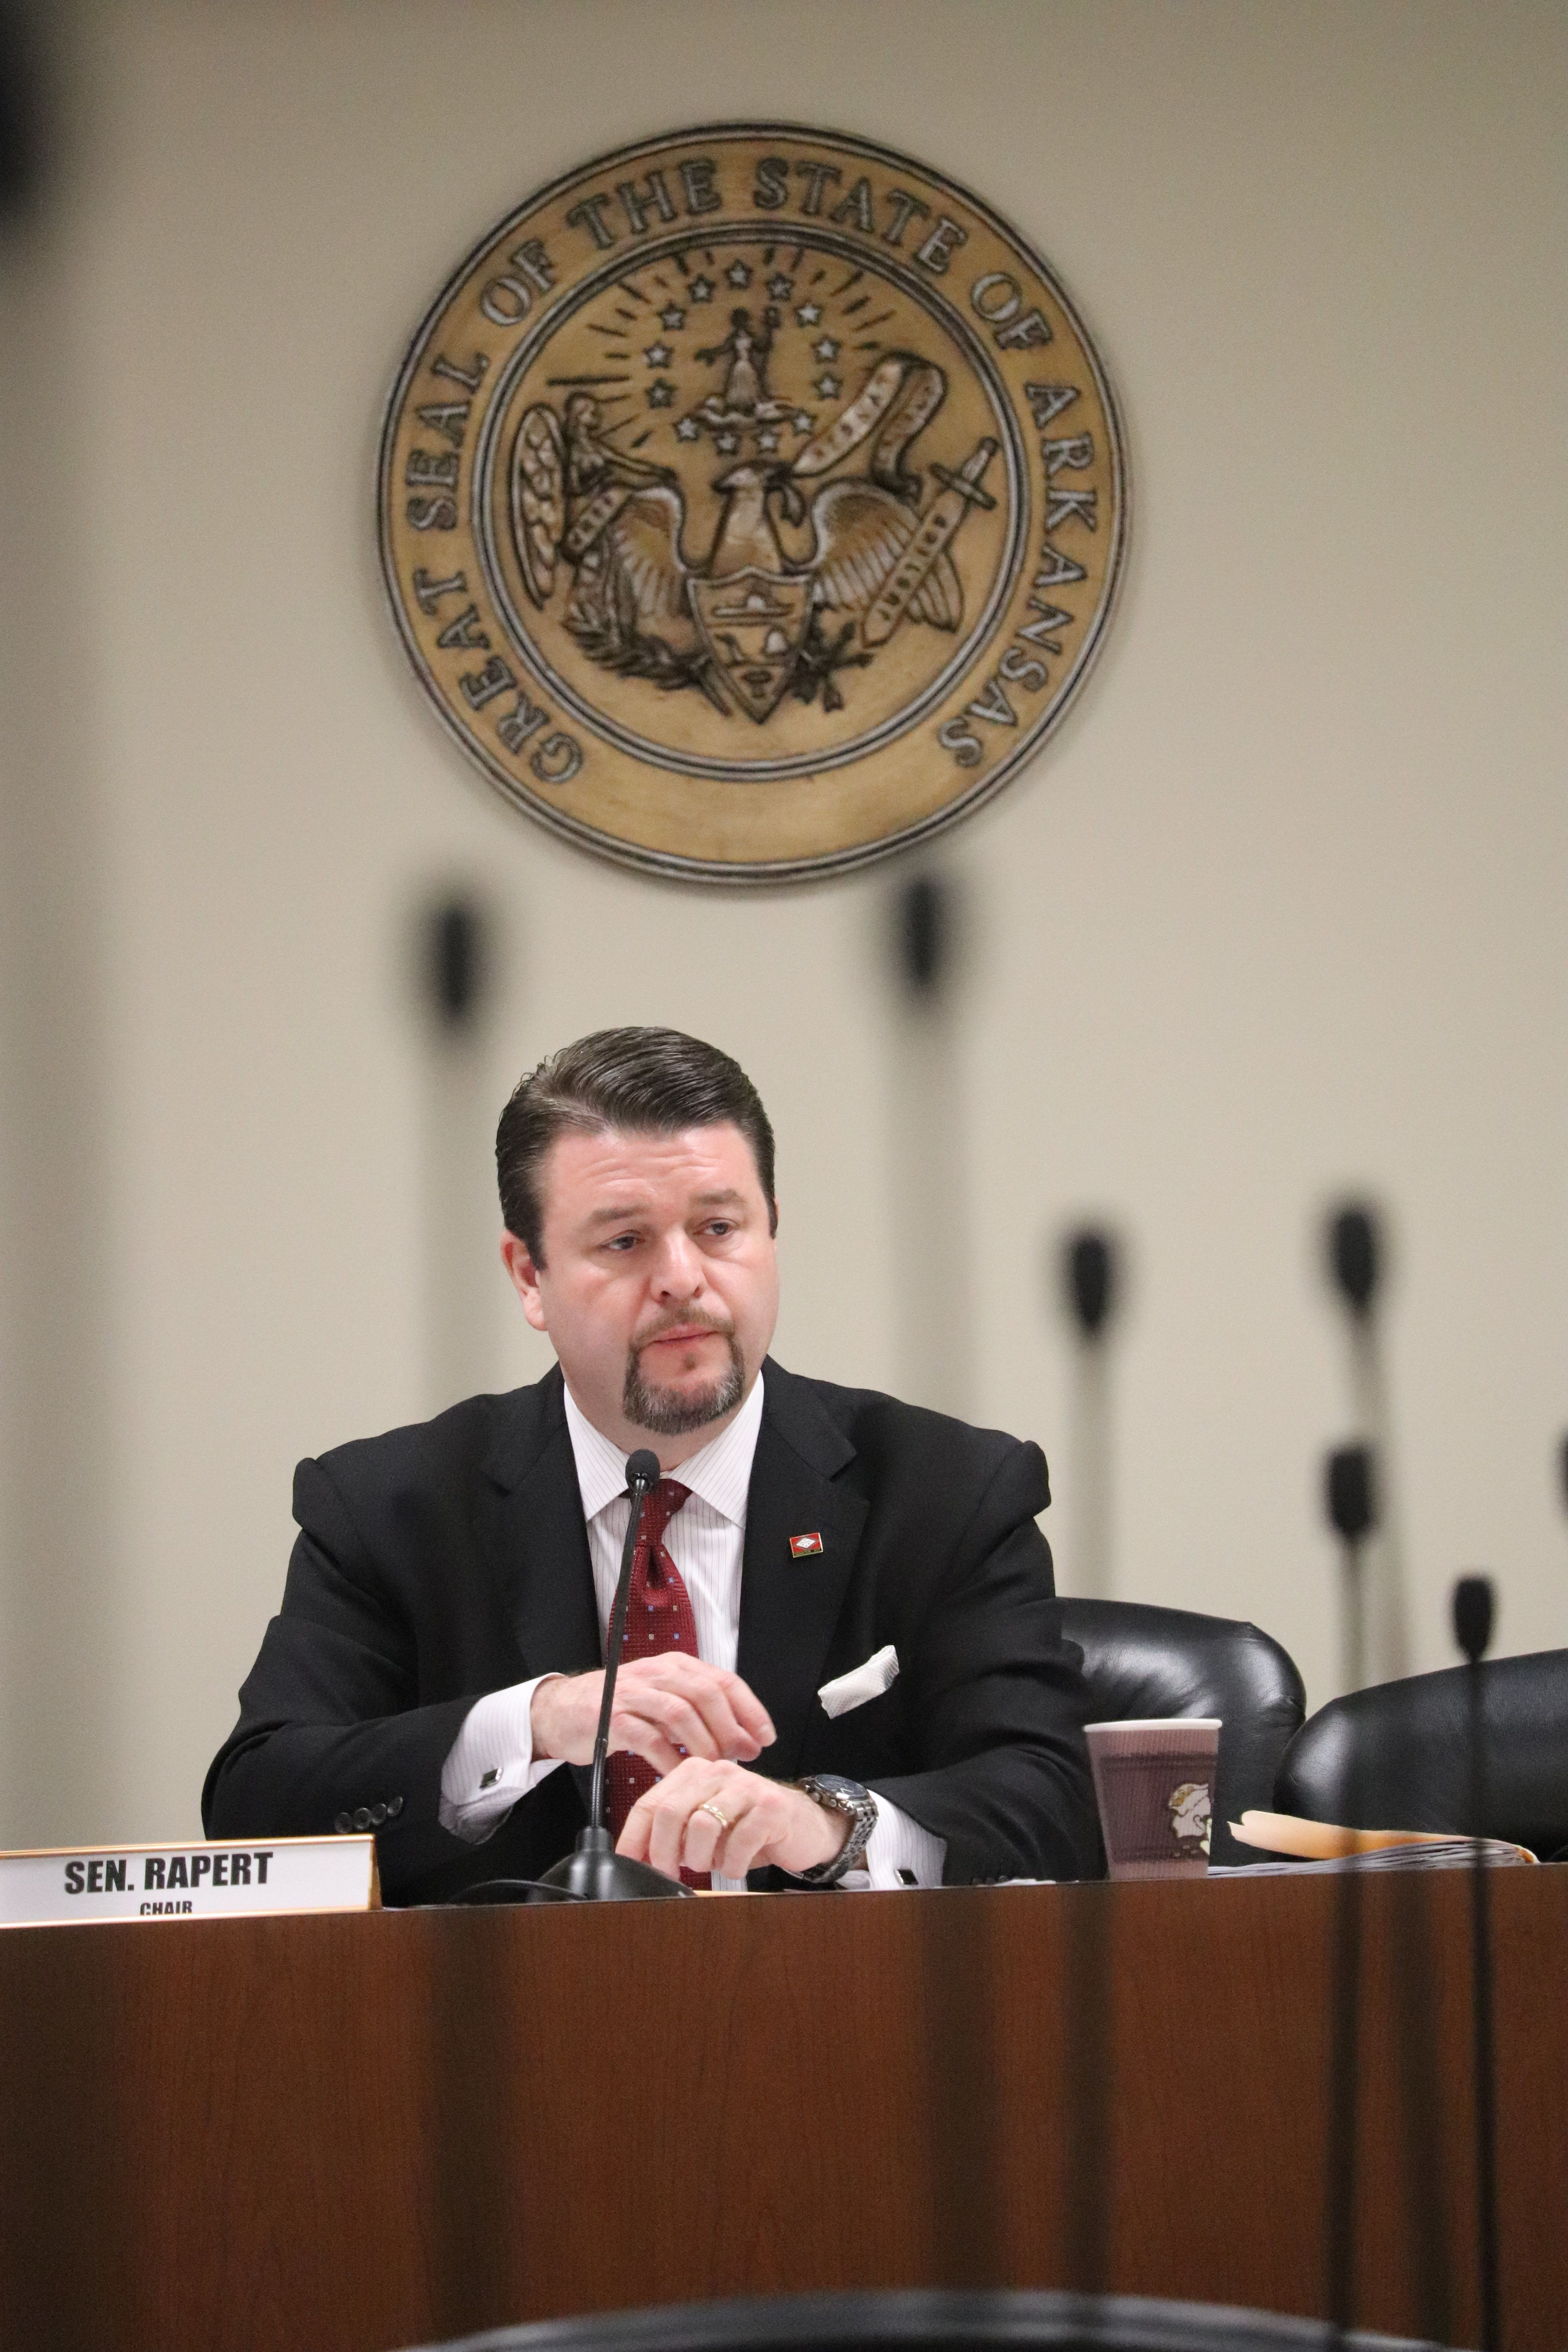 Beyond a number of microphones atop meeting room desks, Sen. Jason Rapert presides Wednesday, March 14, 2018, over a session of the Senate Insurance and Commerce Committee at the state Capitol in Little Rock, Ark. The panel discussed reimbursement rates for pharmacies covered by some benefits management companies. (AP Photo/Kelly P. Kissel)